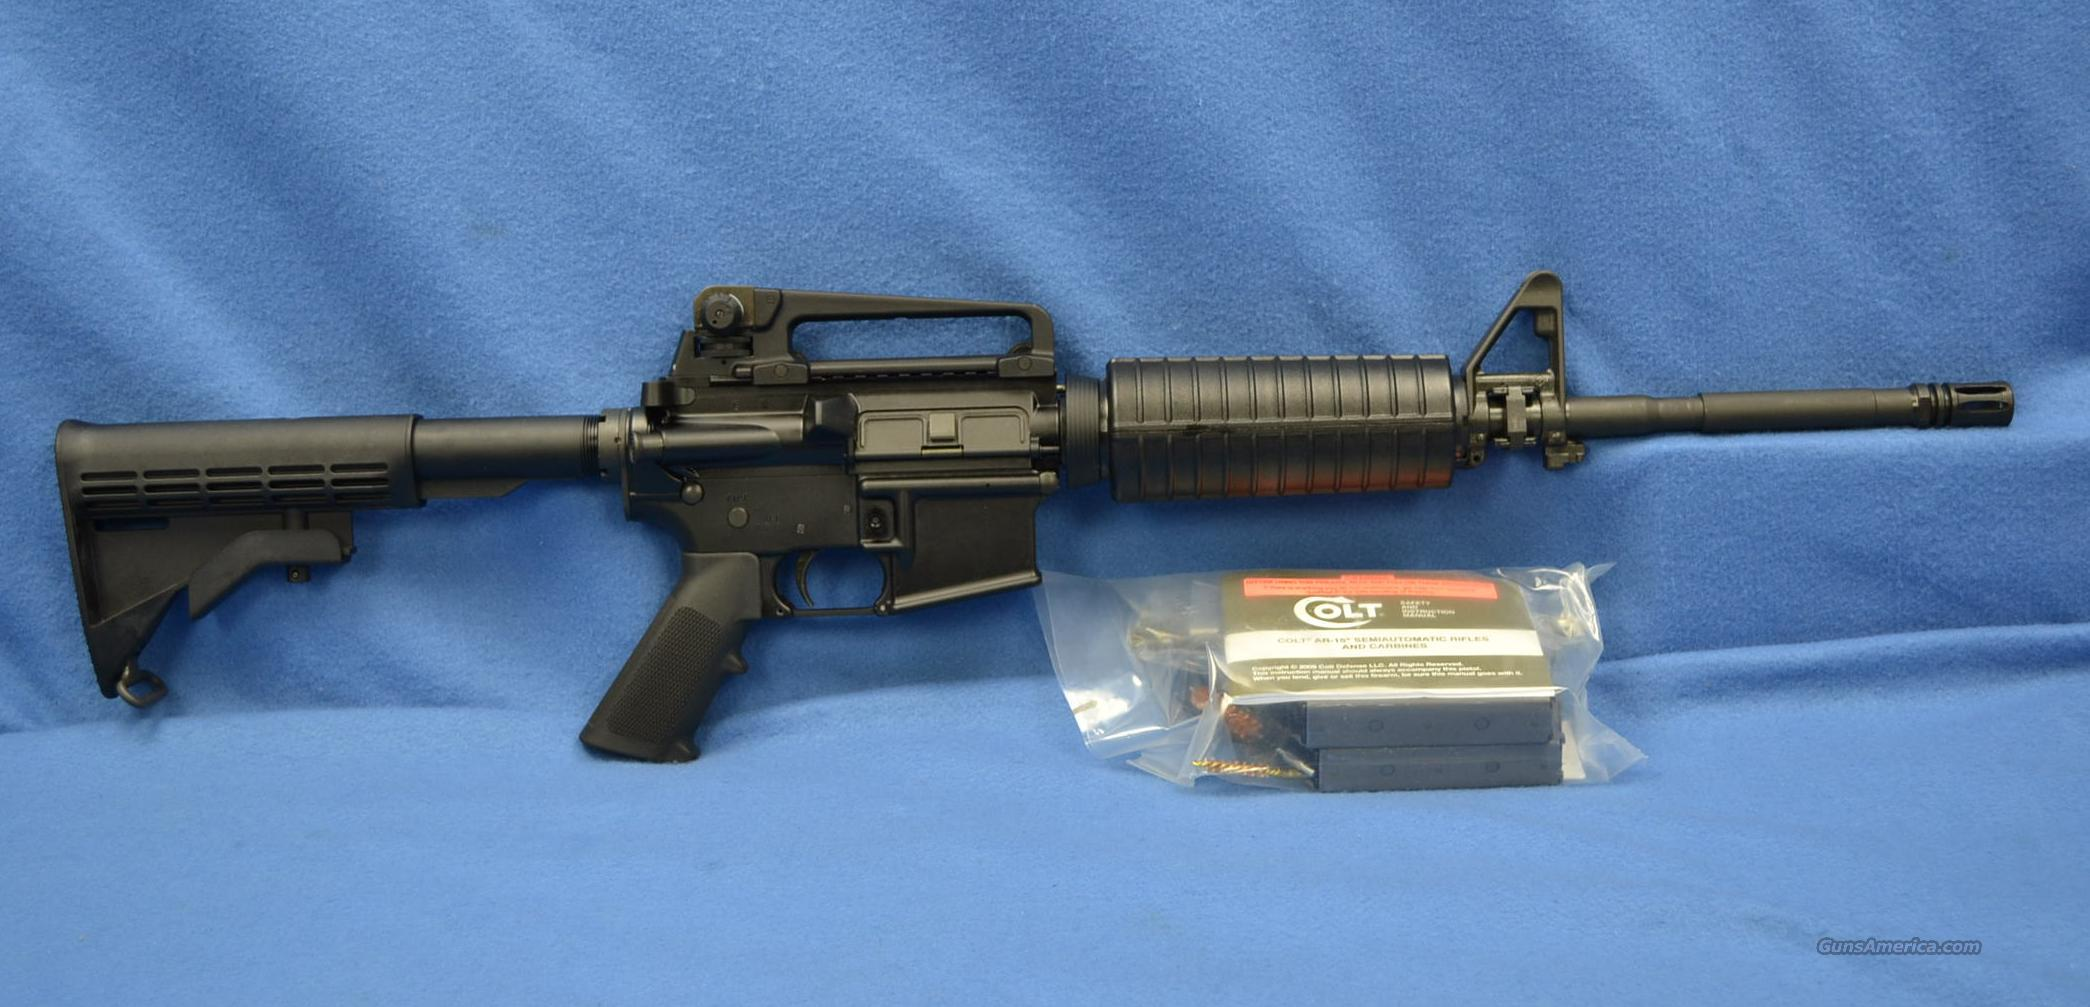 Colt LE6920 M4 Caliber 5.56 CARBINE AR 15 M16 223  Guns > Rifles > Colt Military/Tactical Rifles